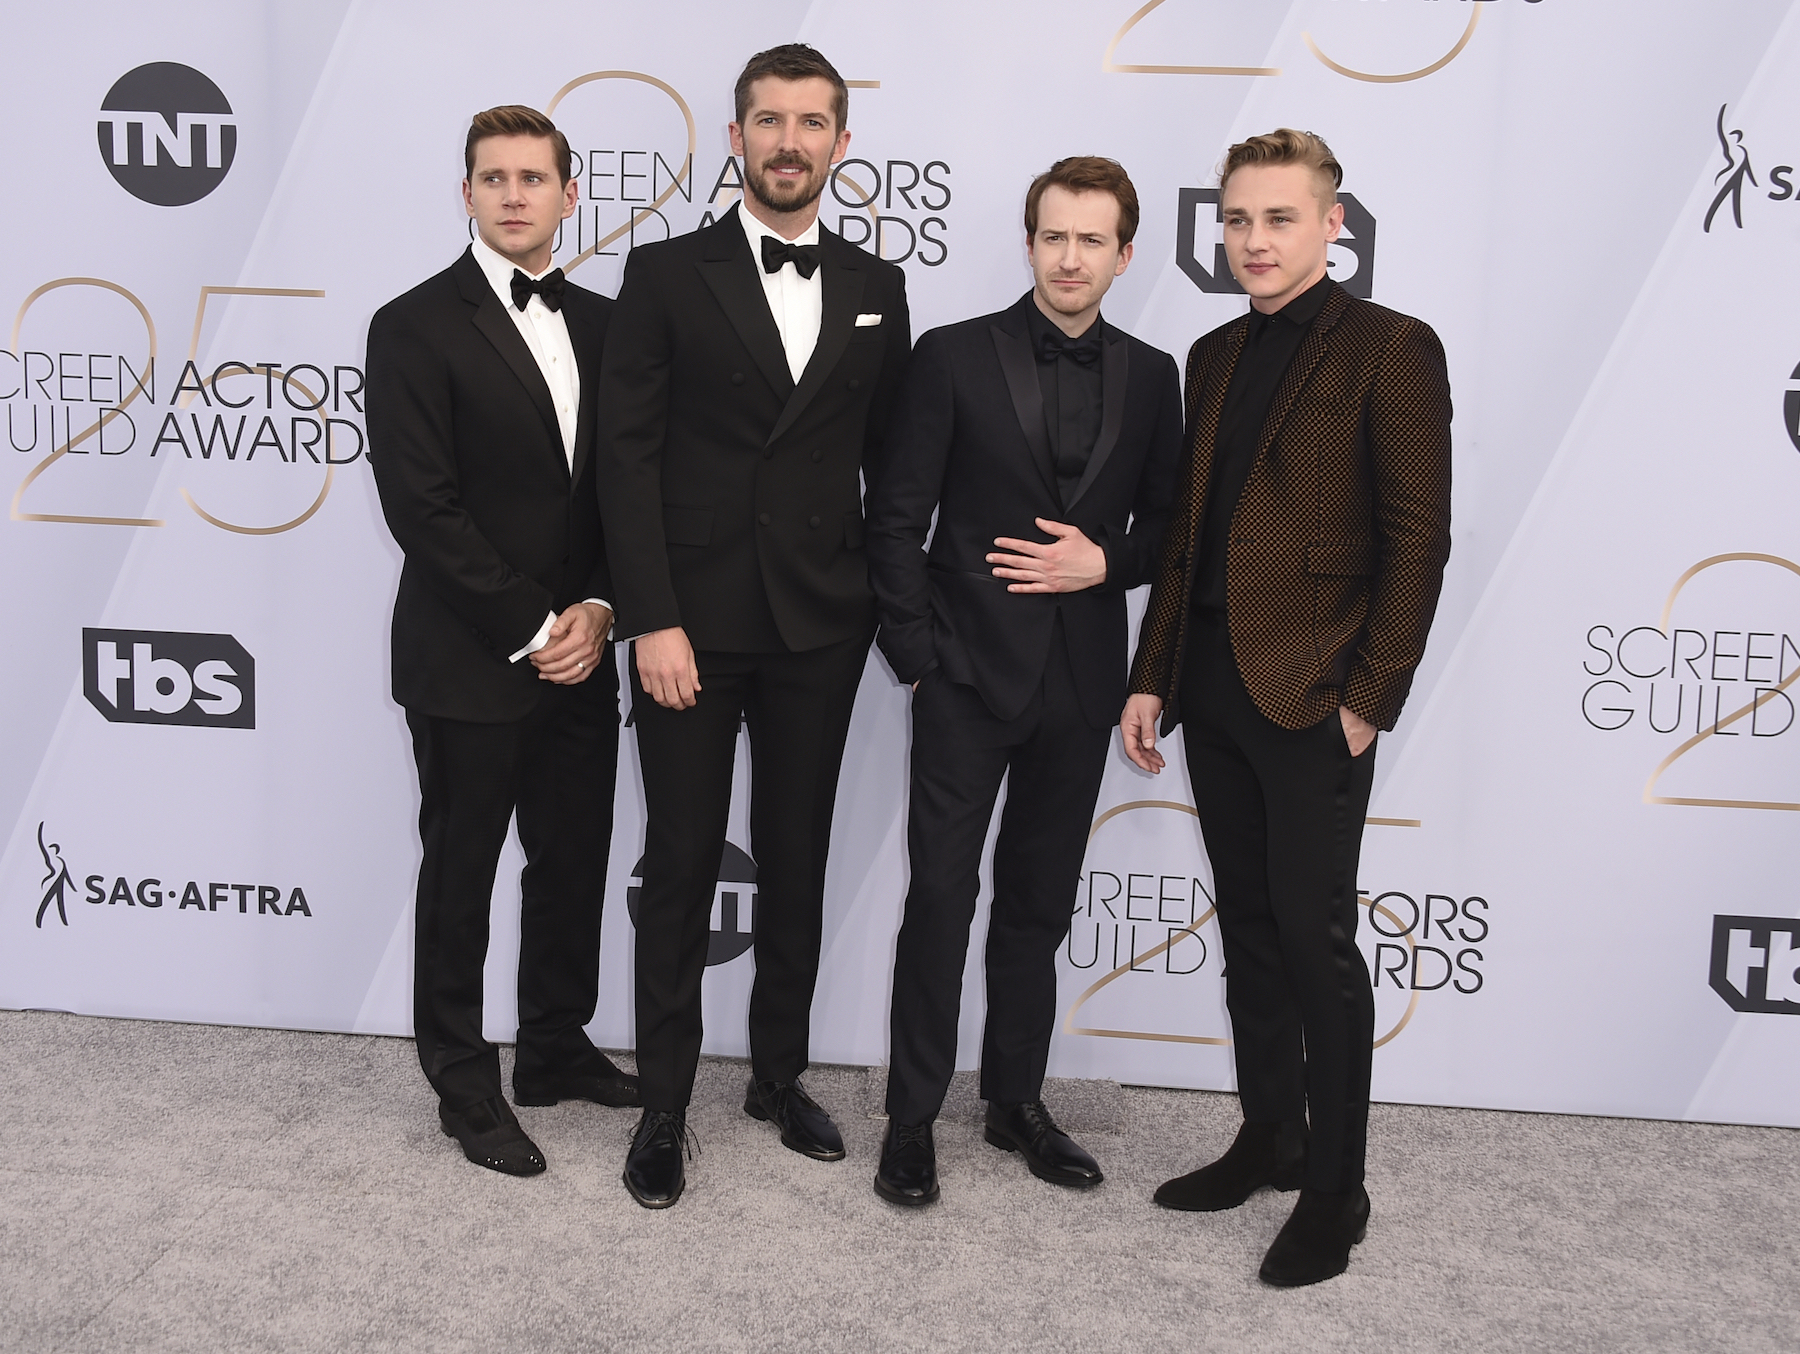 <div class='meta'><div class='origin-logo' data-origin='AP'></div><span class='caption-text' data-credit='Jordan Strauss/Invision/AP'>Allen Leech, from left, Gwilym Lee, Joseph Mazzello, and Ben Hardy arrive at the 25th annual Screen Actors Guild Awards at the Shrine Auditorium & Expo Hall.</span></div>